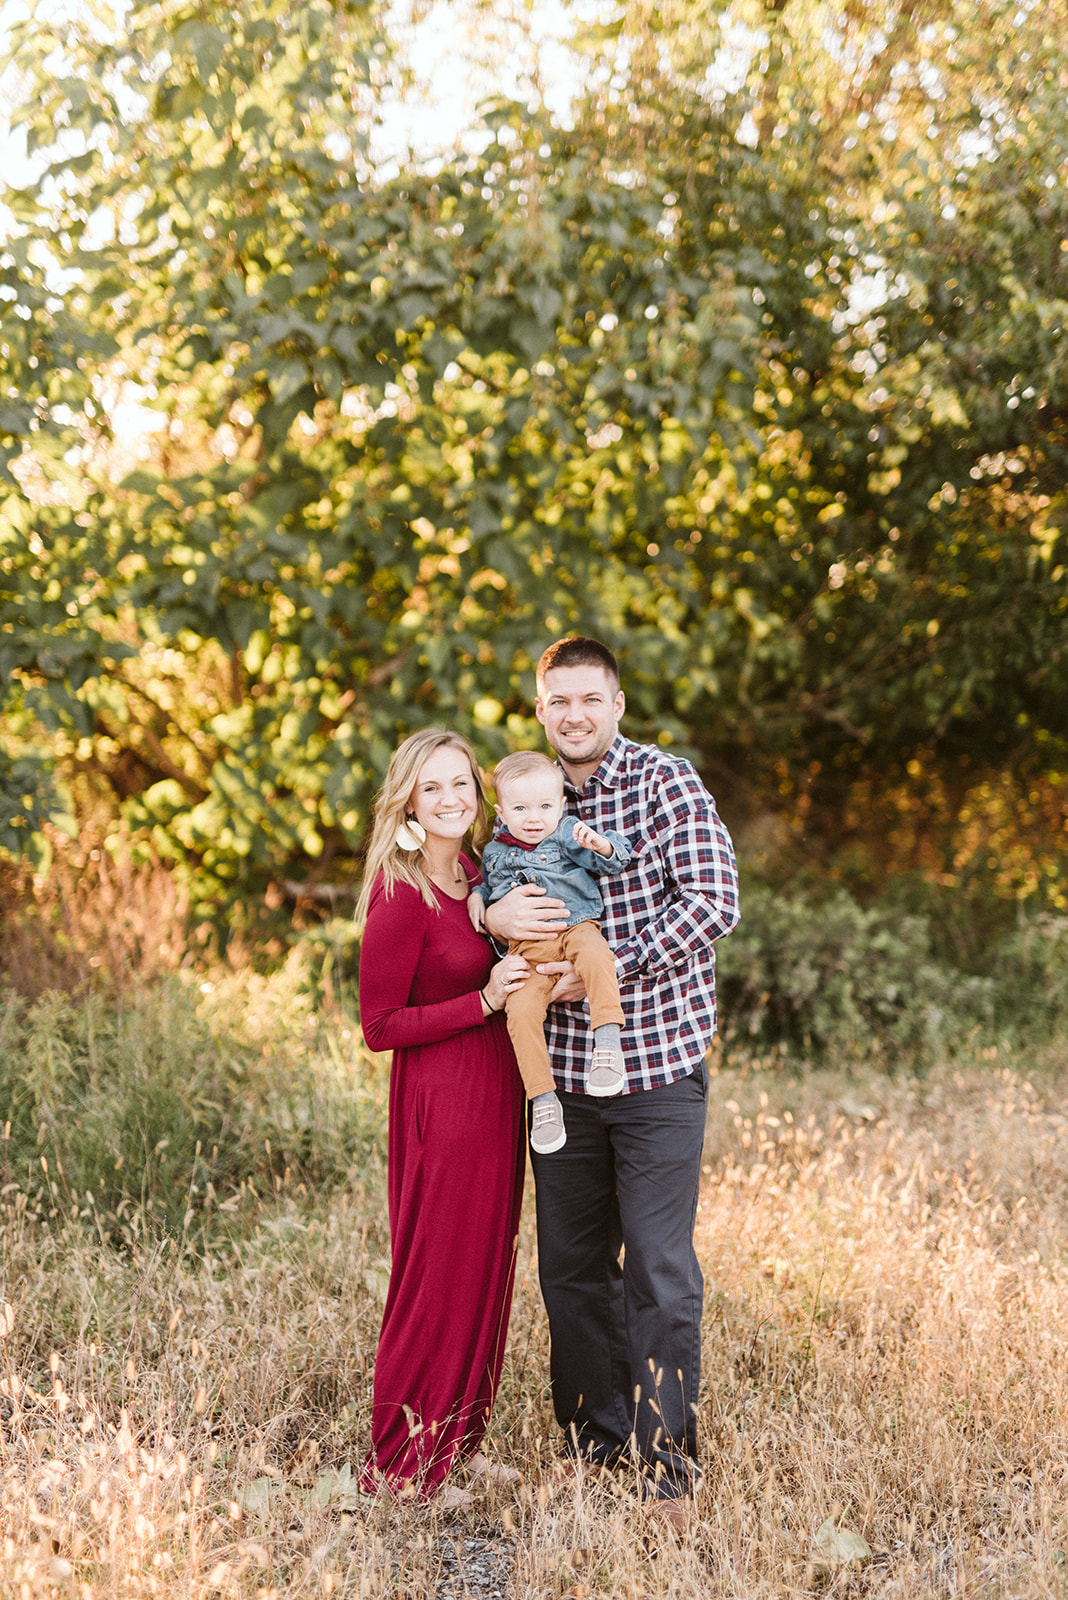 Family and lifestyle photographer based in Lancaster, Pennsylvania.